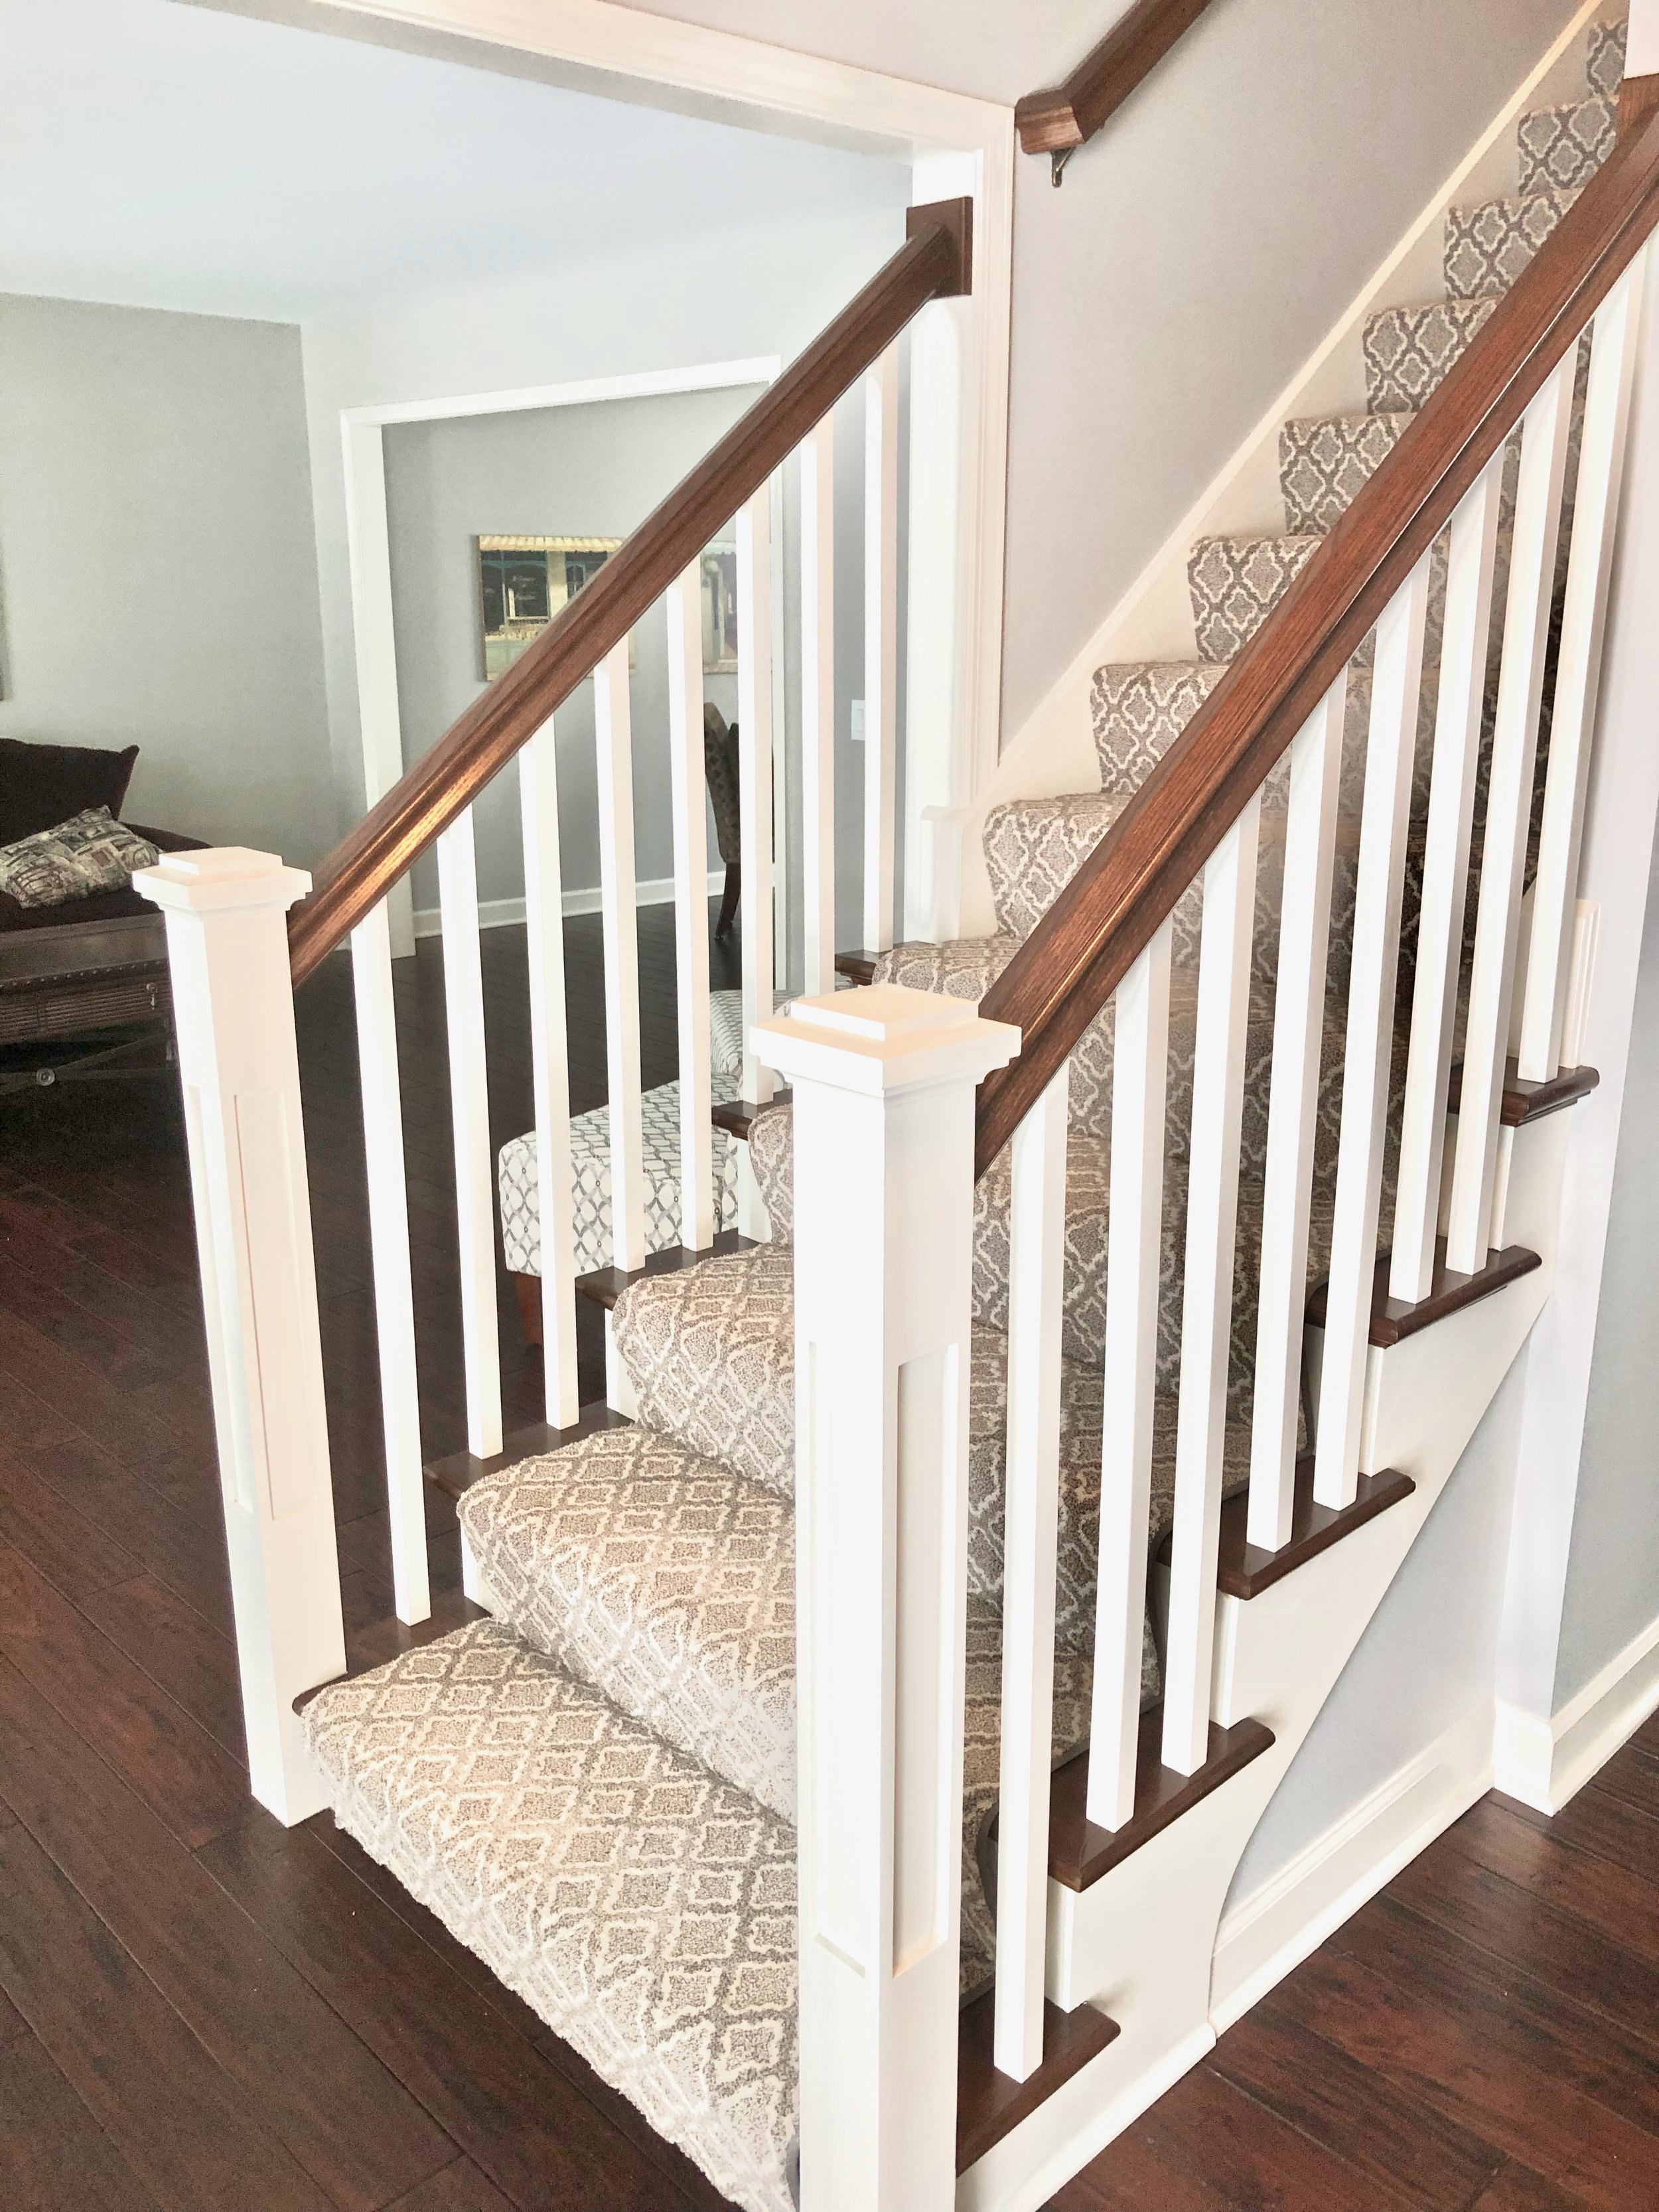 FOYER STAIRCASE REMODELING & UPDATING IN HOME REMODELS AND RENOVATIONS. UPDATE AND REPALCE YOUR FOYER STAIR CASE WITH NEW WHITE SQUARE SPINDLES AND DARKER STAINED HAND RAILS AND STAIR TREADS. SQUARE STARING NEWELS. LOCATED IN GENEVA IL. SOUTHAMPTON SERVICES NAPERVILLE, GLEN ELLYN, BARRINGTON, ELMHURST, ST. CHARLES & BATAVIA. MANY MORE NORTHERN ILLINOIS TOWNS ALSO SERVICED!